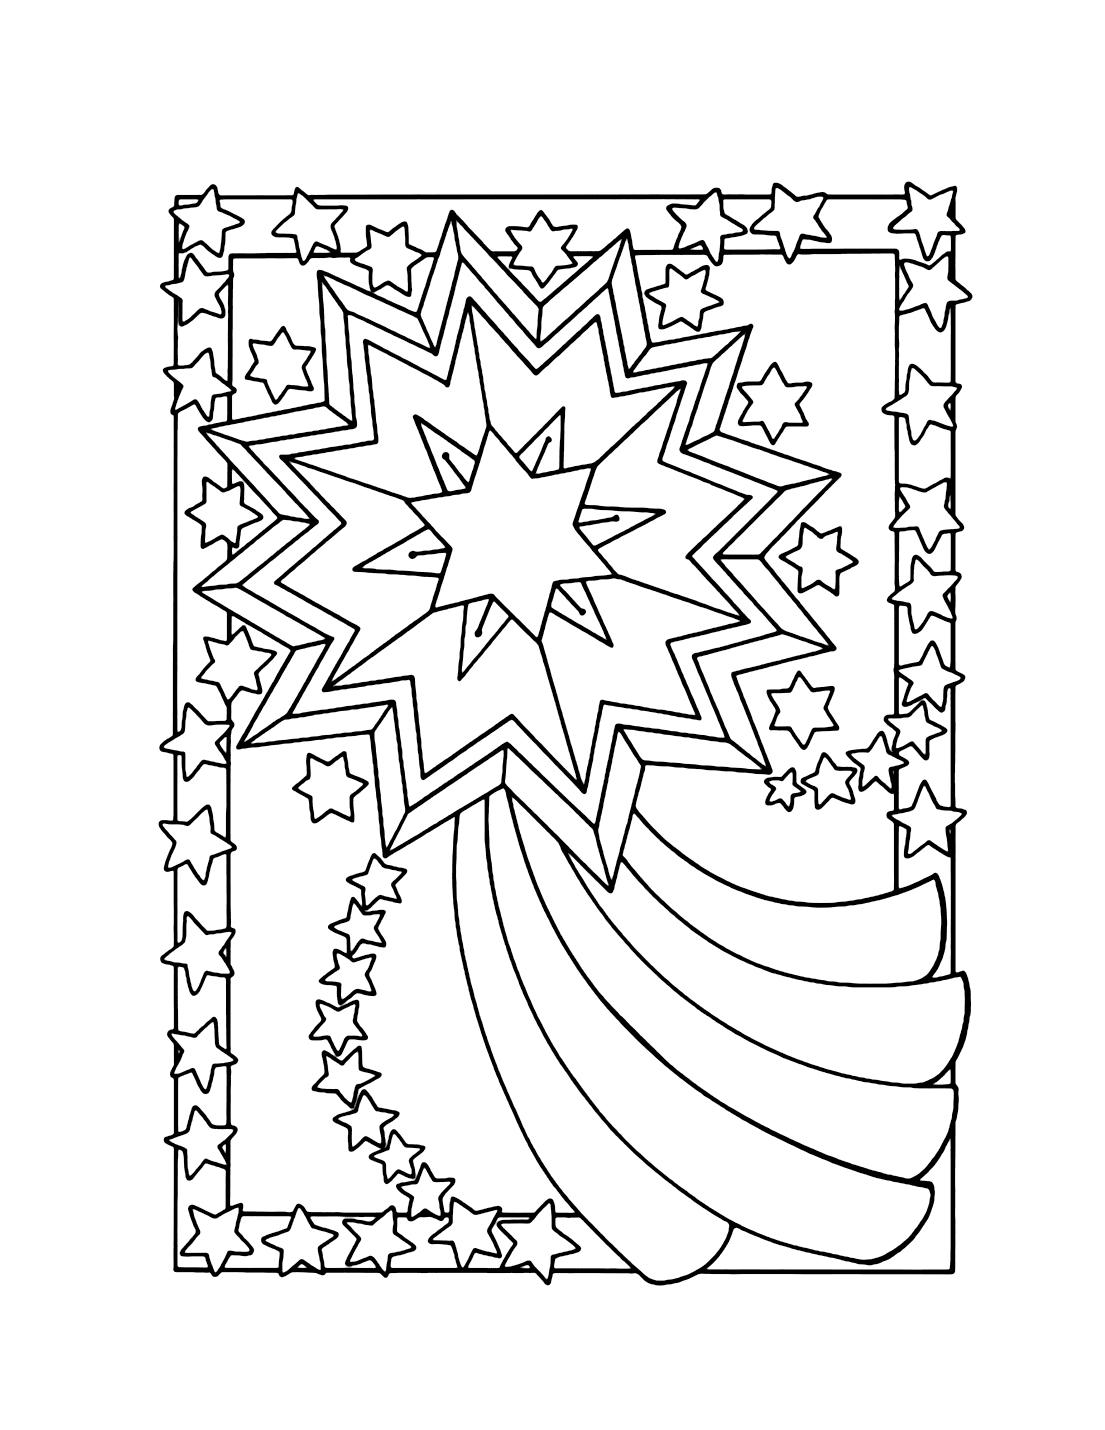 Fancy Stars Coloring Page